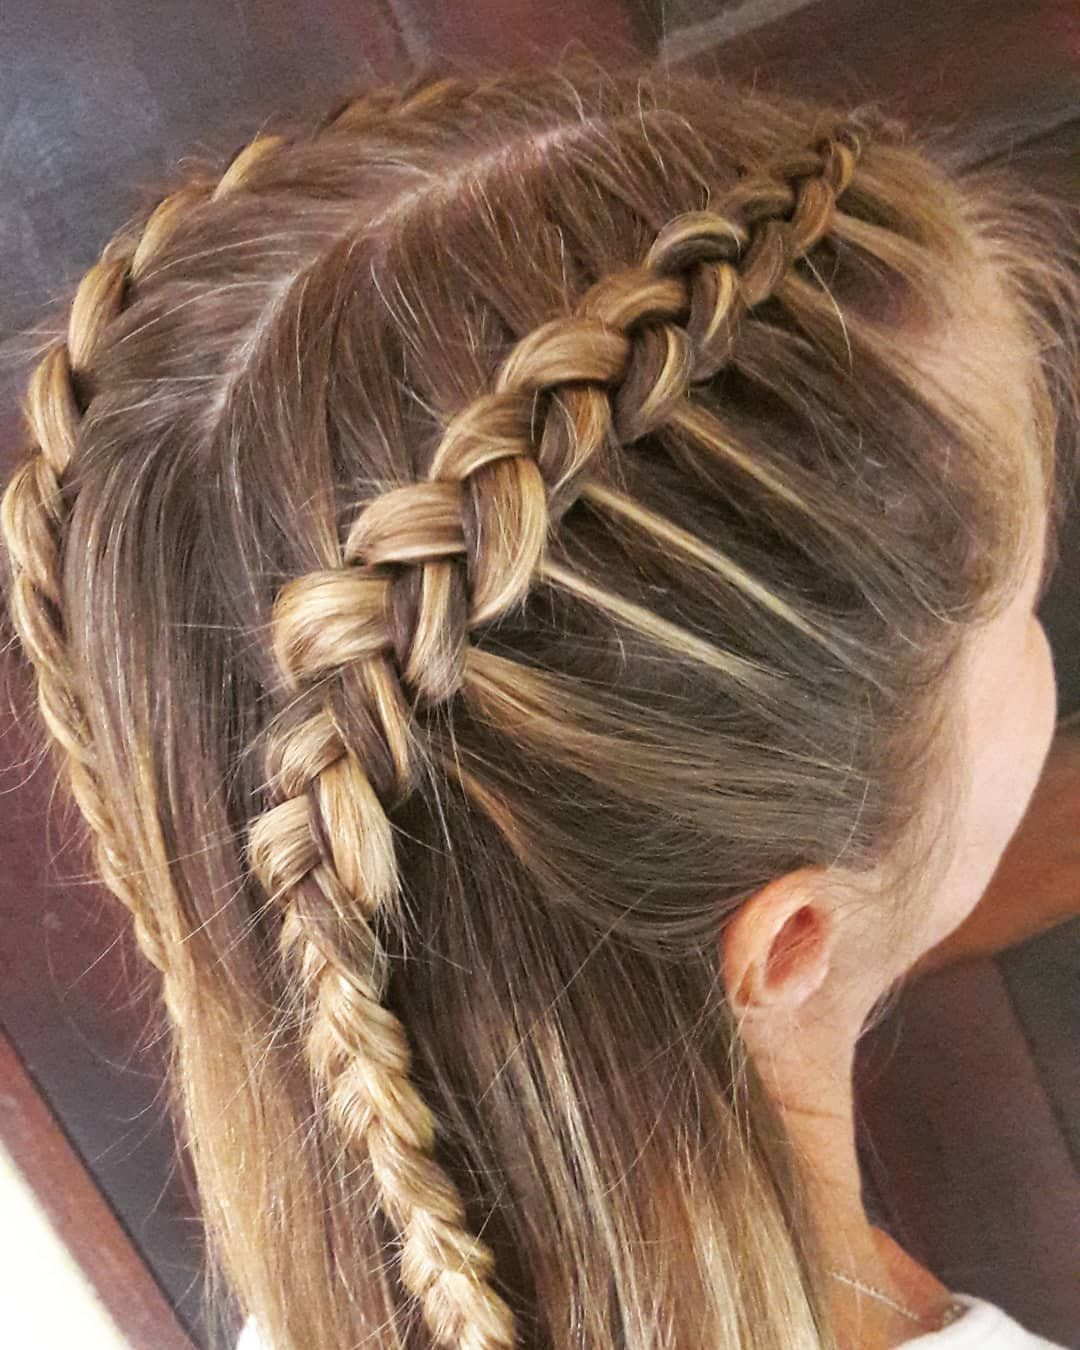 28 Gorgeous Multiple Braids Hairstyles For Women In 2020 Womens Hairstyles Hair Styles Braided Hairstyles